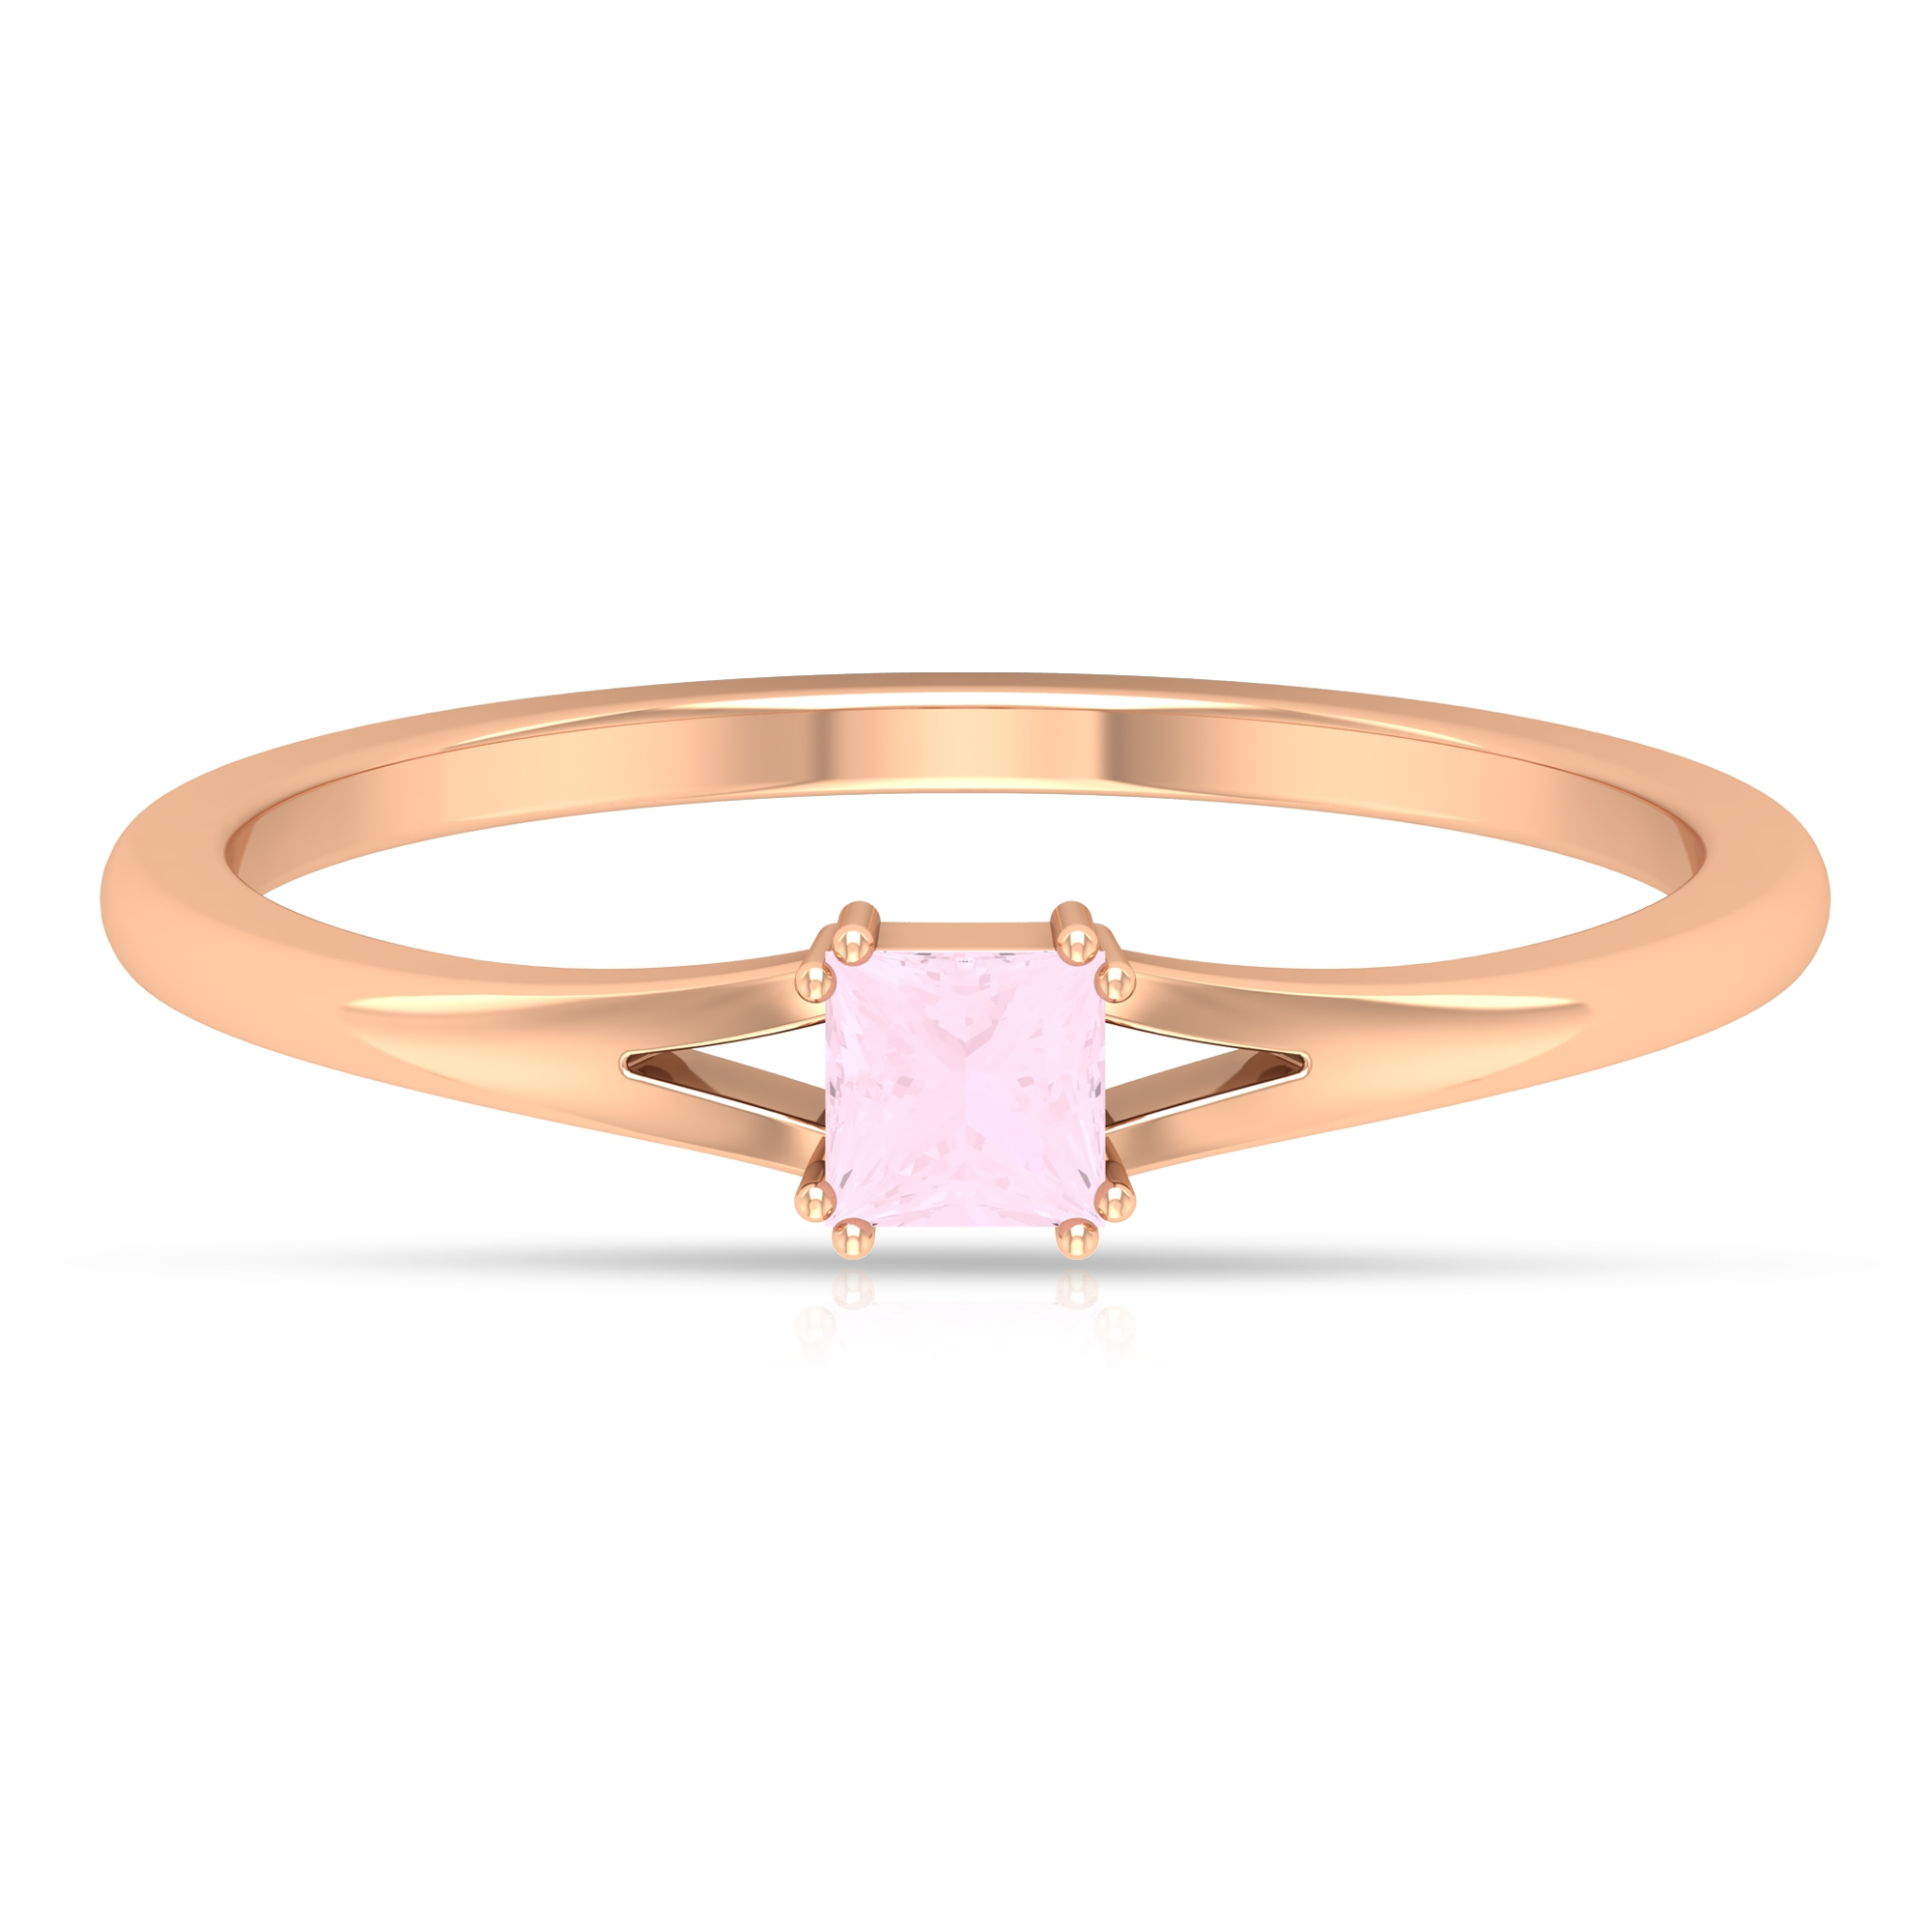 3.3X3.3 MM Princess Cut Rose Quartz Solitaire Ring in Double Prong Setting with Split Shank